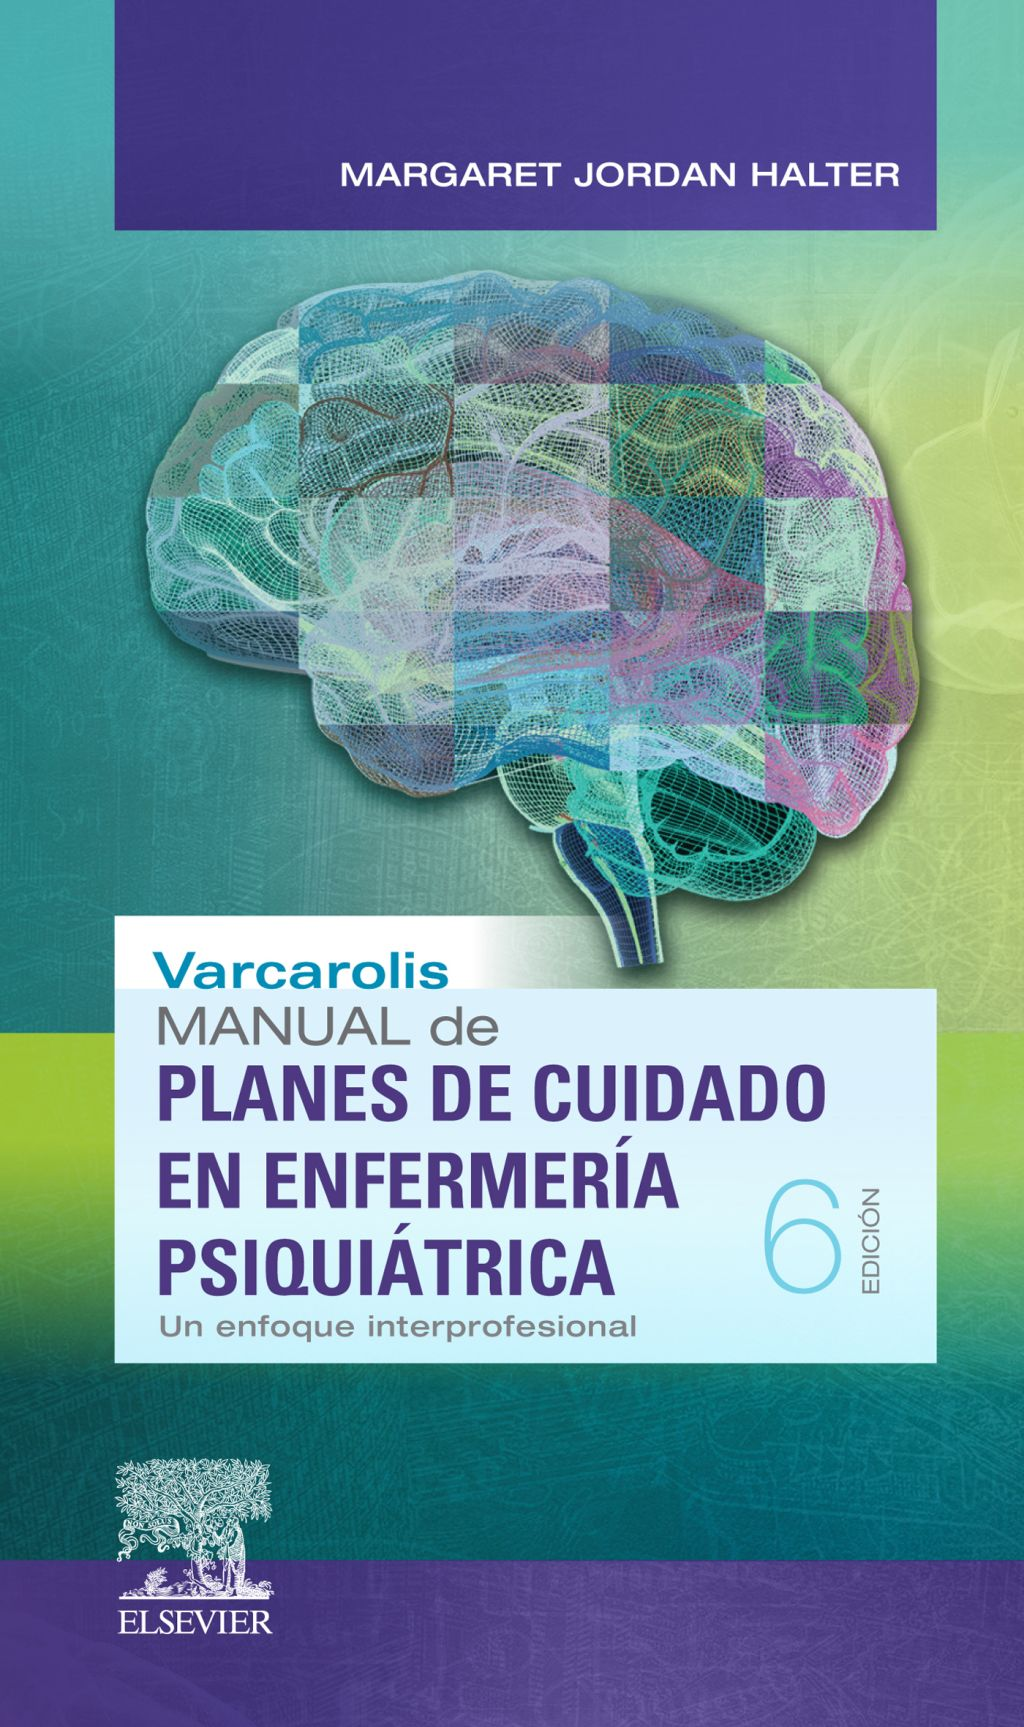 Varcarolis Manual De Planes De Cuidado En Enfermería Psiquiátrica Ebook Psychiatric Nursing Nursing Care Nursing Care Plan